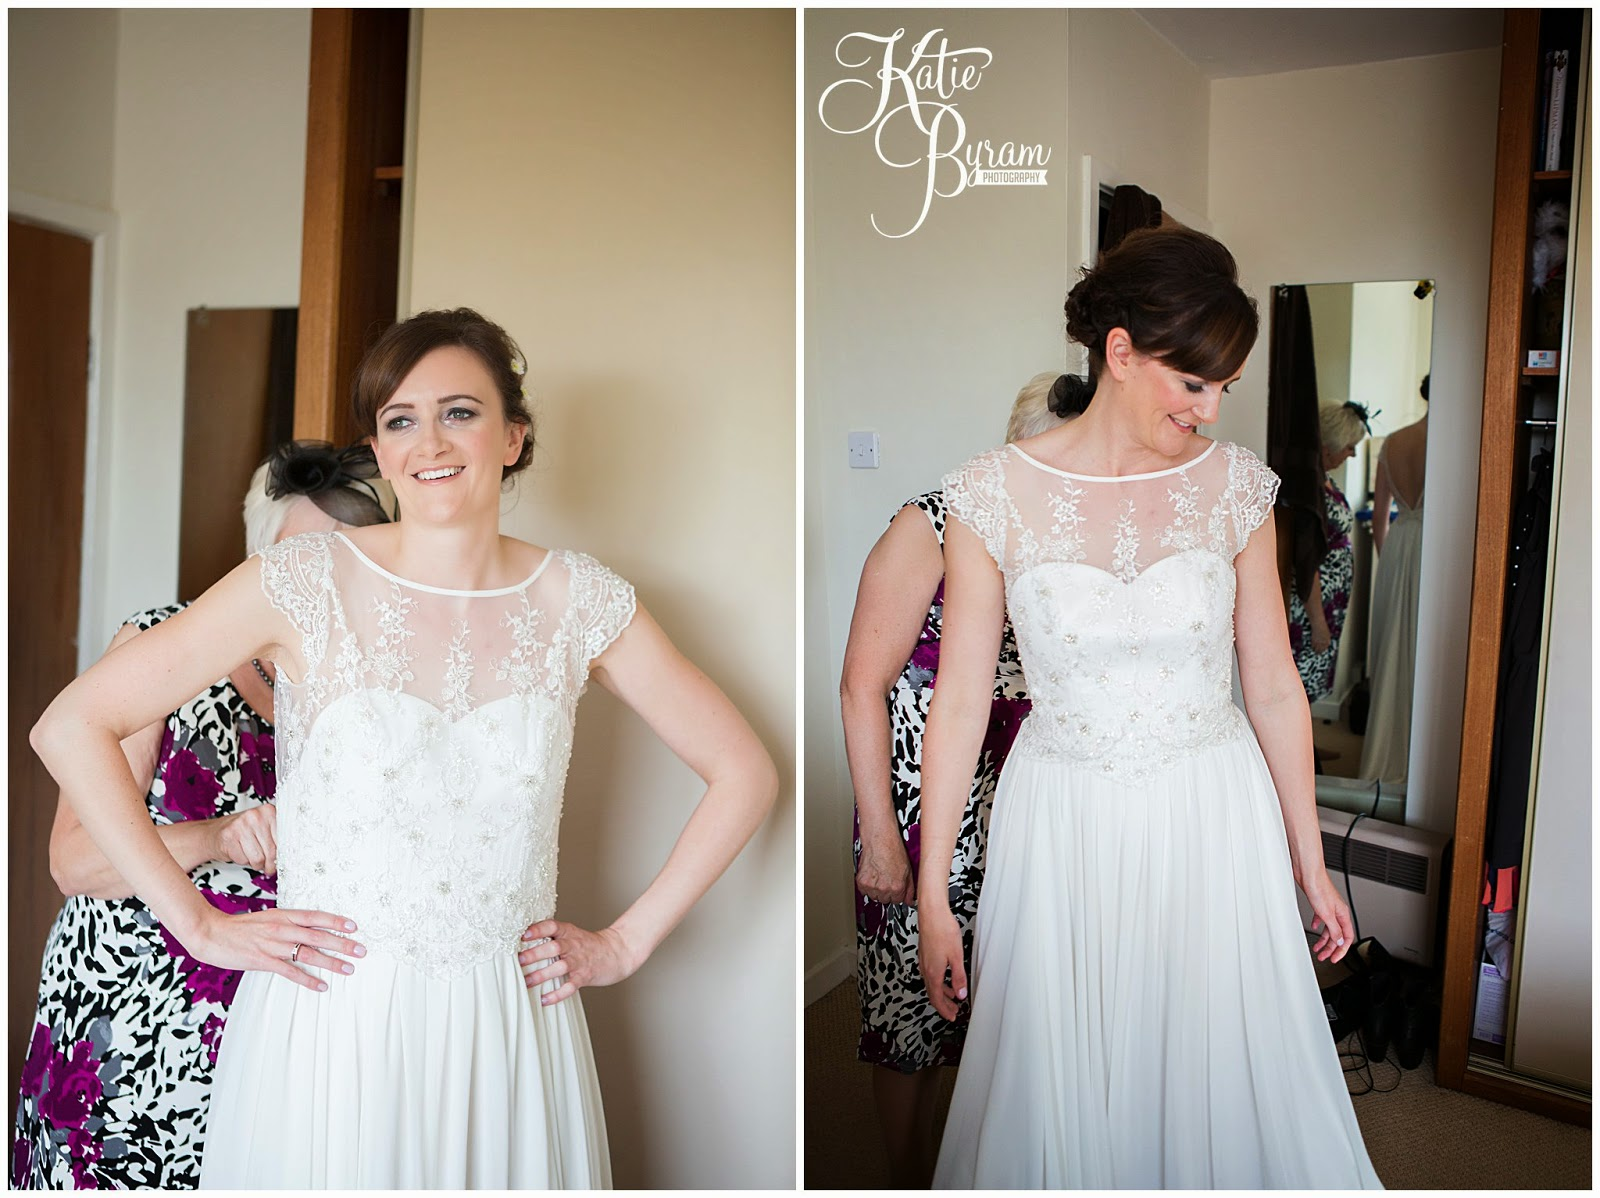 summerhill bowling green, quayside wedding, newcastle wedding, no ordinary florist, vintage wedding, diy wedding, katie byram photography